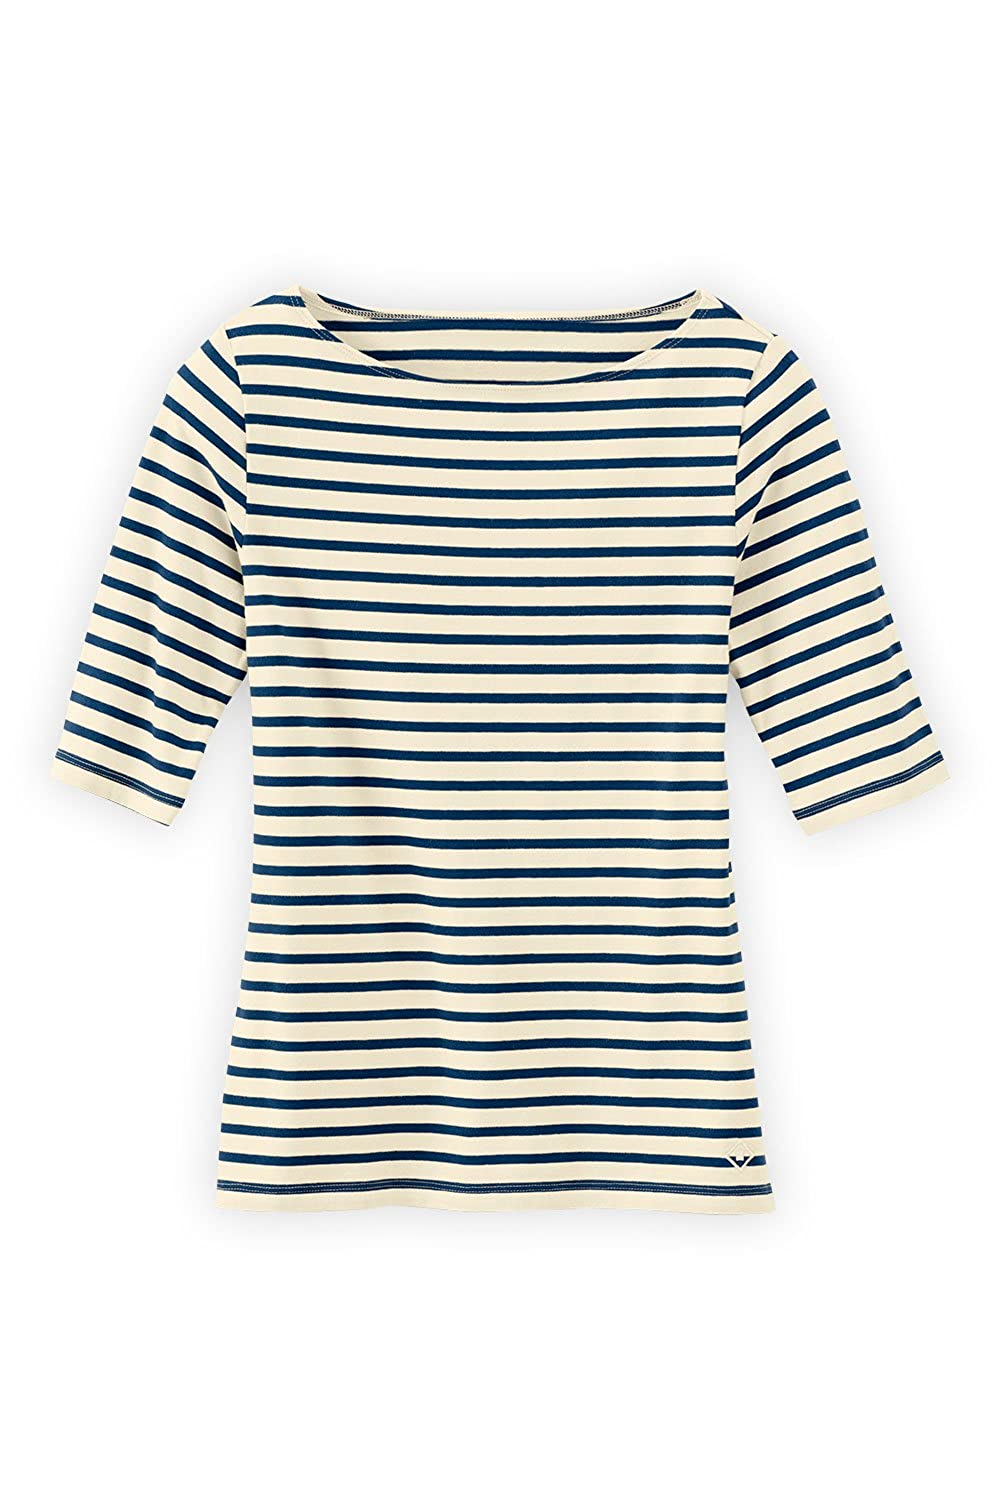 Fair Indigo Fair Trade Organic Boat Neck Tee by Fair Indigo